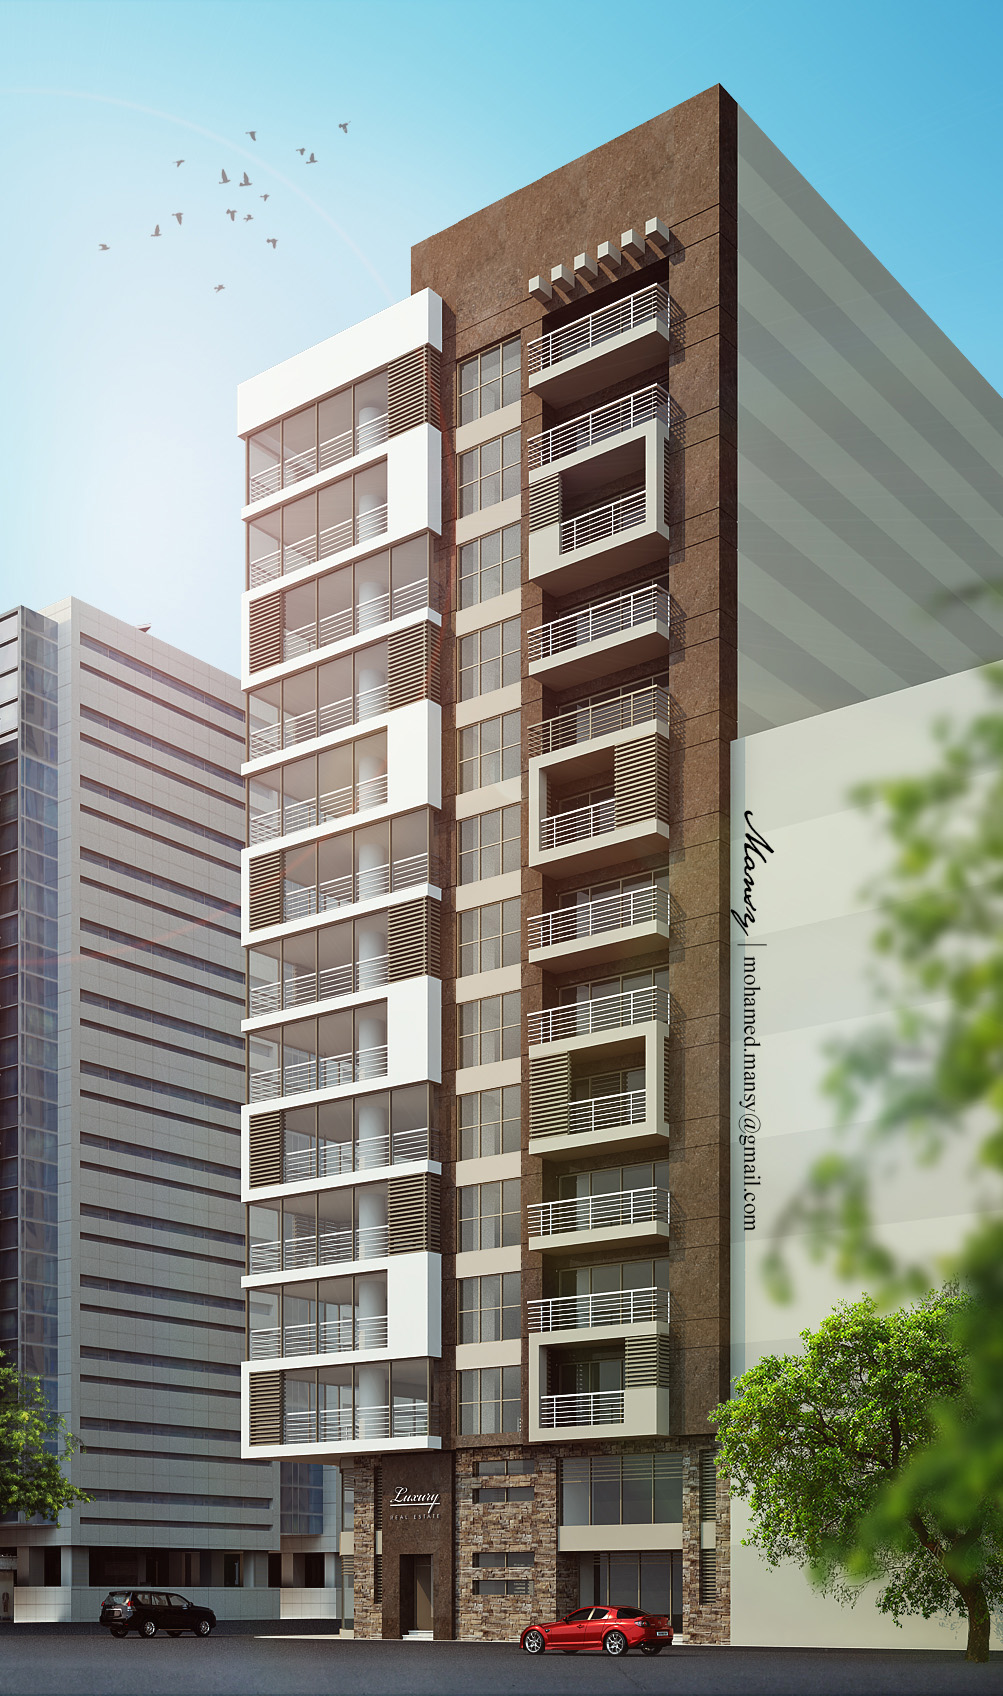 Luxury high rise residential apartment building on behance for Luxury barn builders